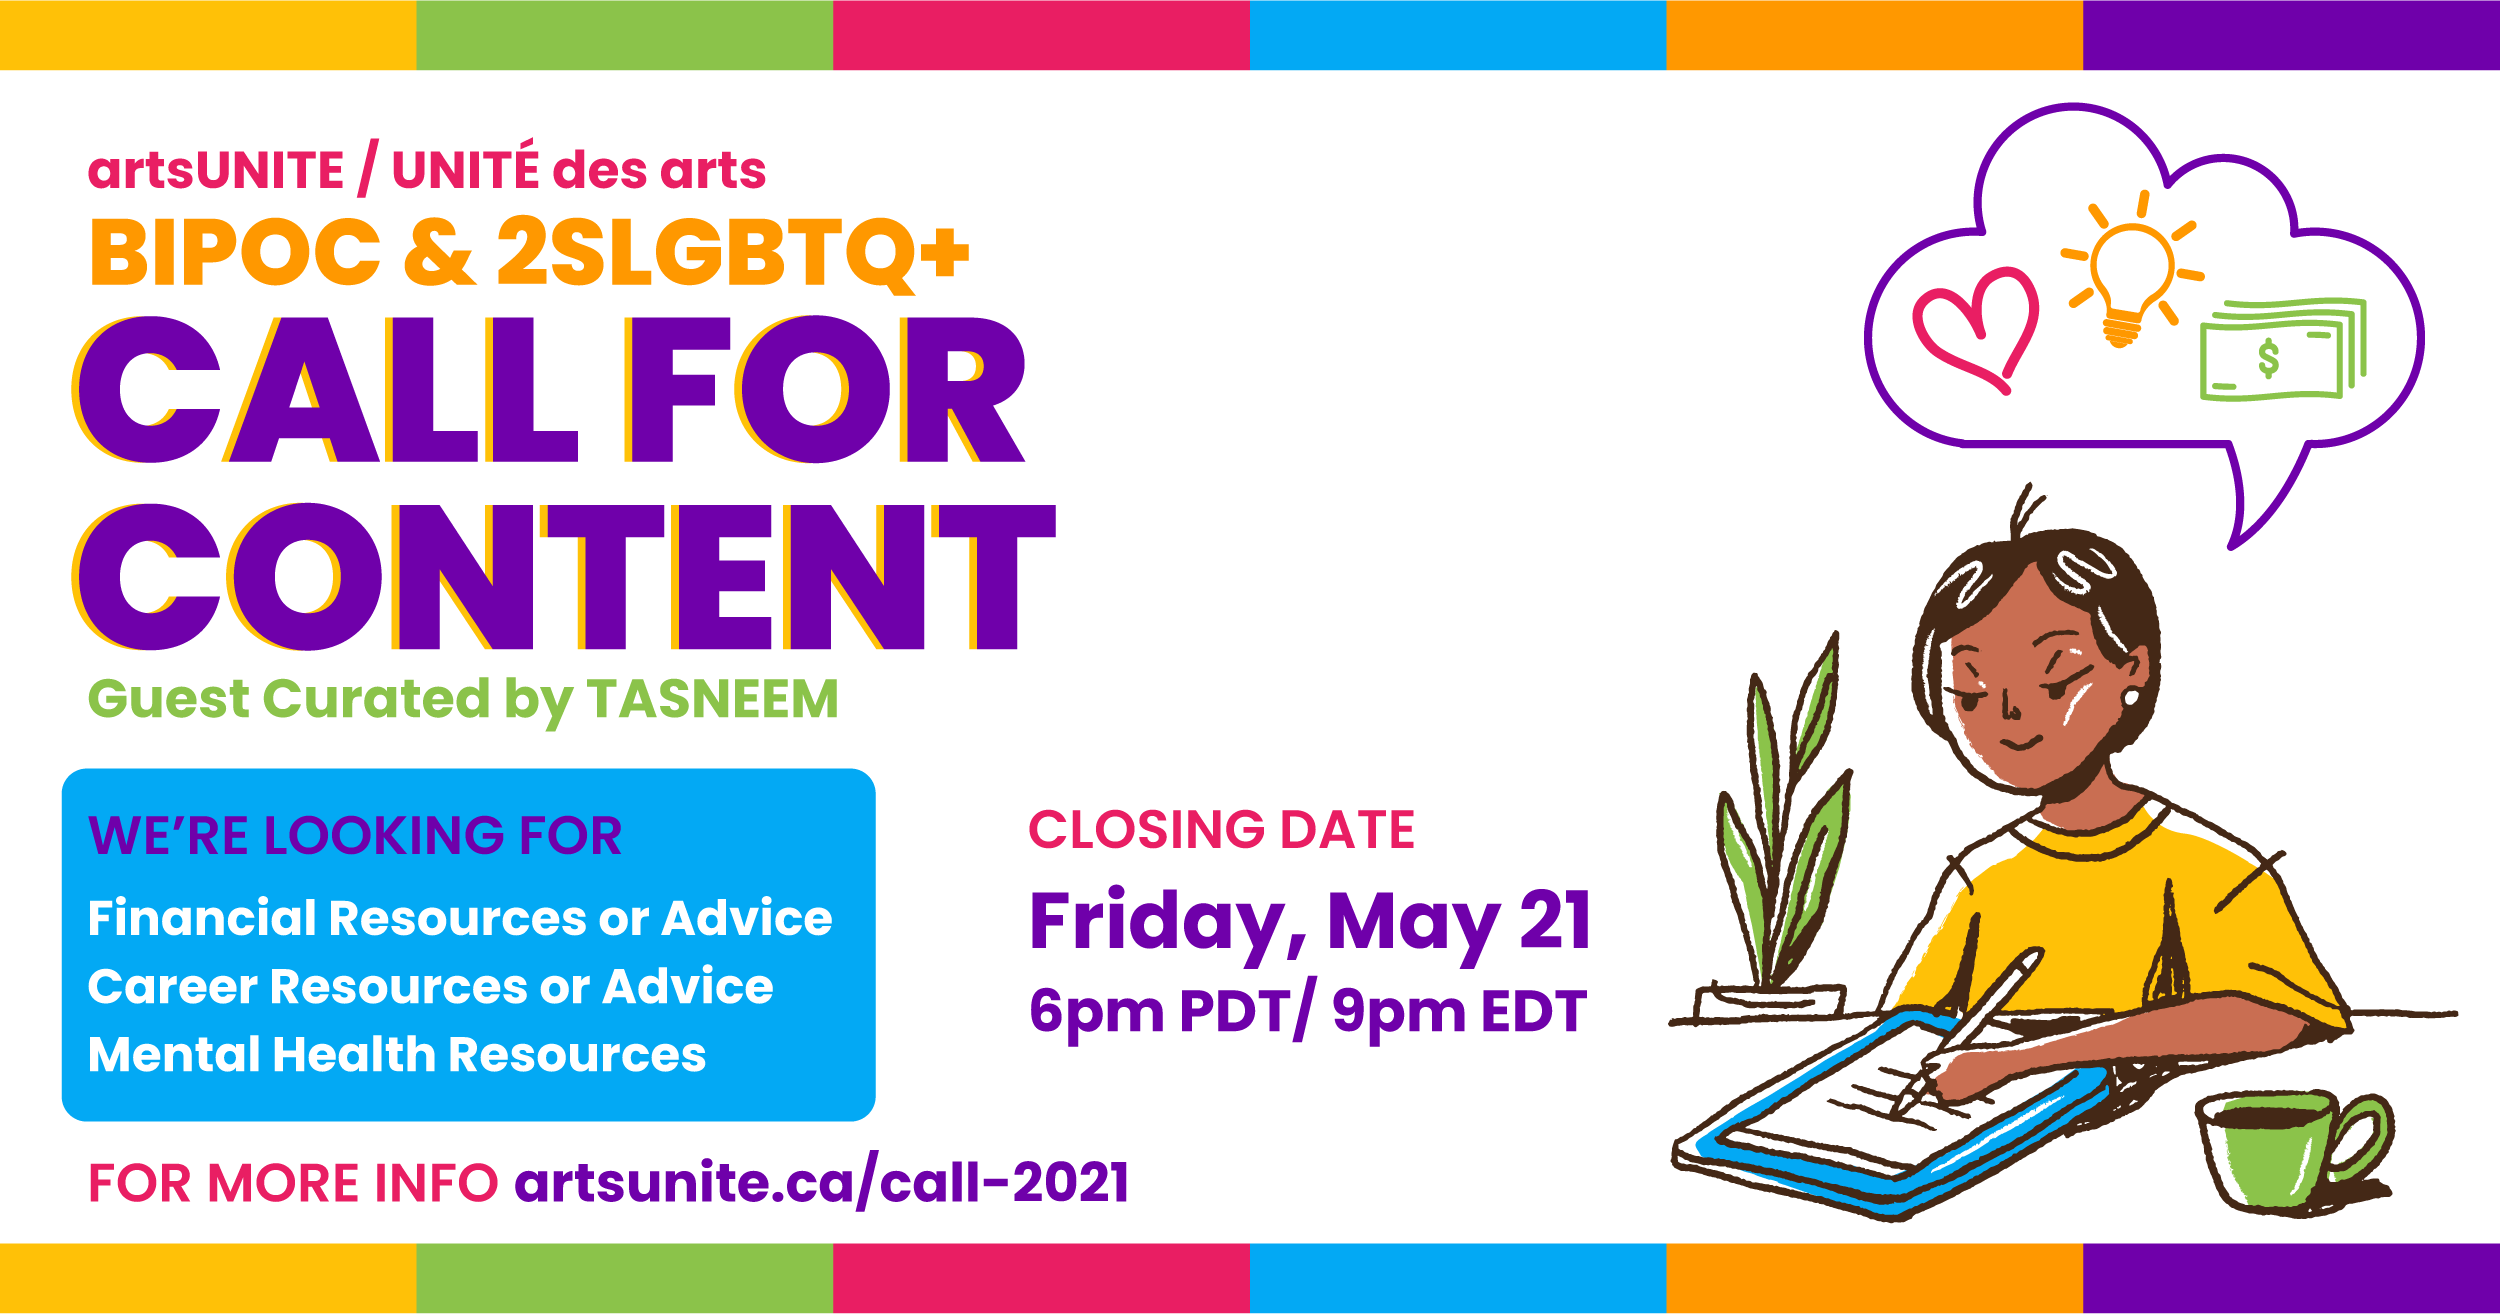 artsUNITE Call for Content for BIPOC and 2SLTBGQ+, guest curated by Tasneem. We're looking for Financial Resources or advice, Career Resources or Advice, and/or Mental Hwalth Resources. Deadline to Apply is Friday May 21st, at 6 pm PDT/9 pm EST